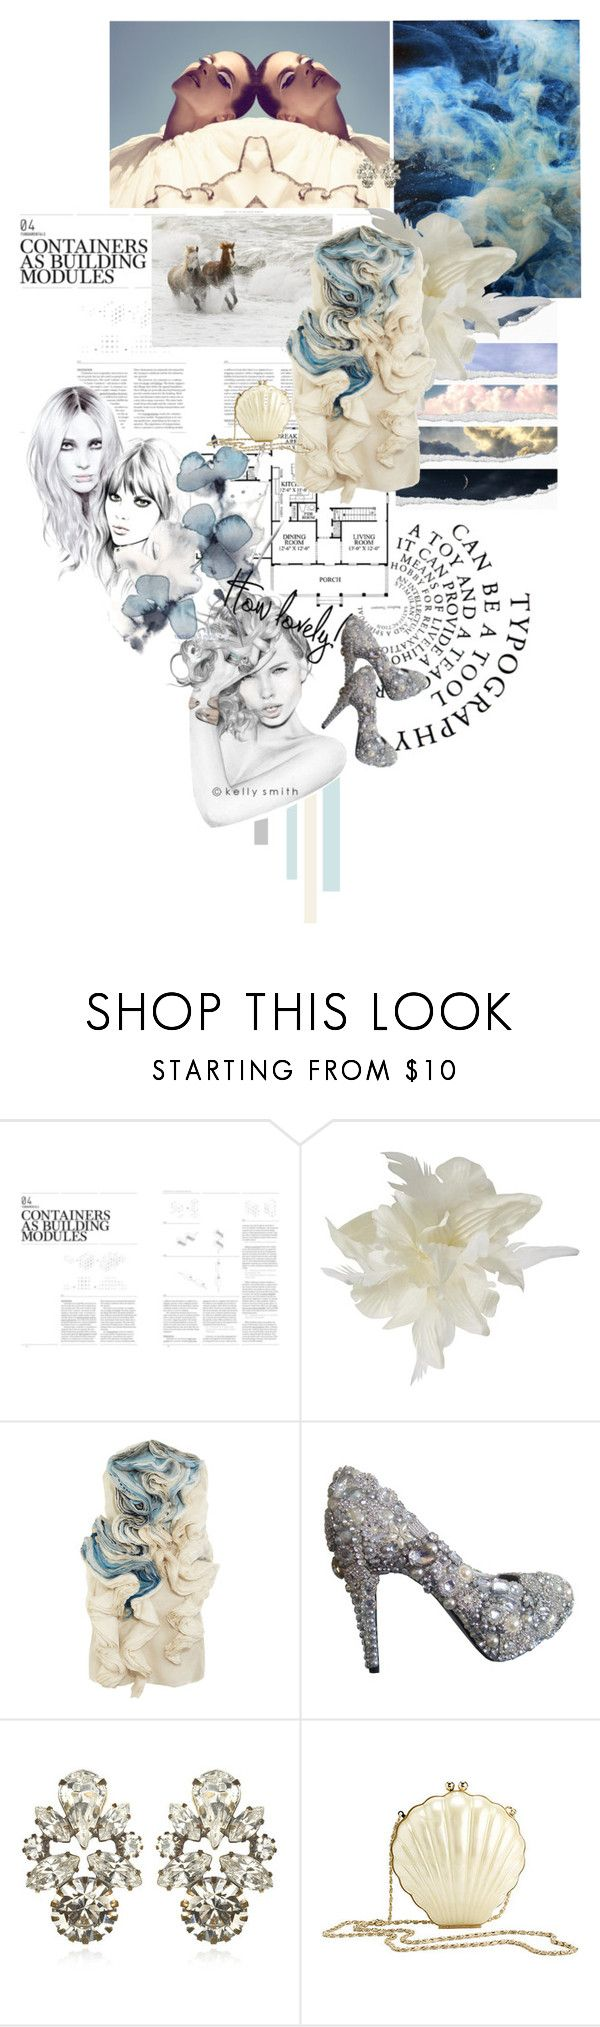 """№254"" by greenbird ❤ liked on Polyvore featuring GESTALTEN, Zara, Jane Norman, Felicity Brown, Cocotay and Reiss"